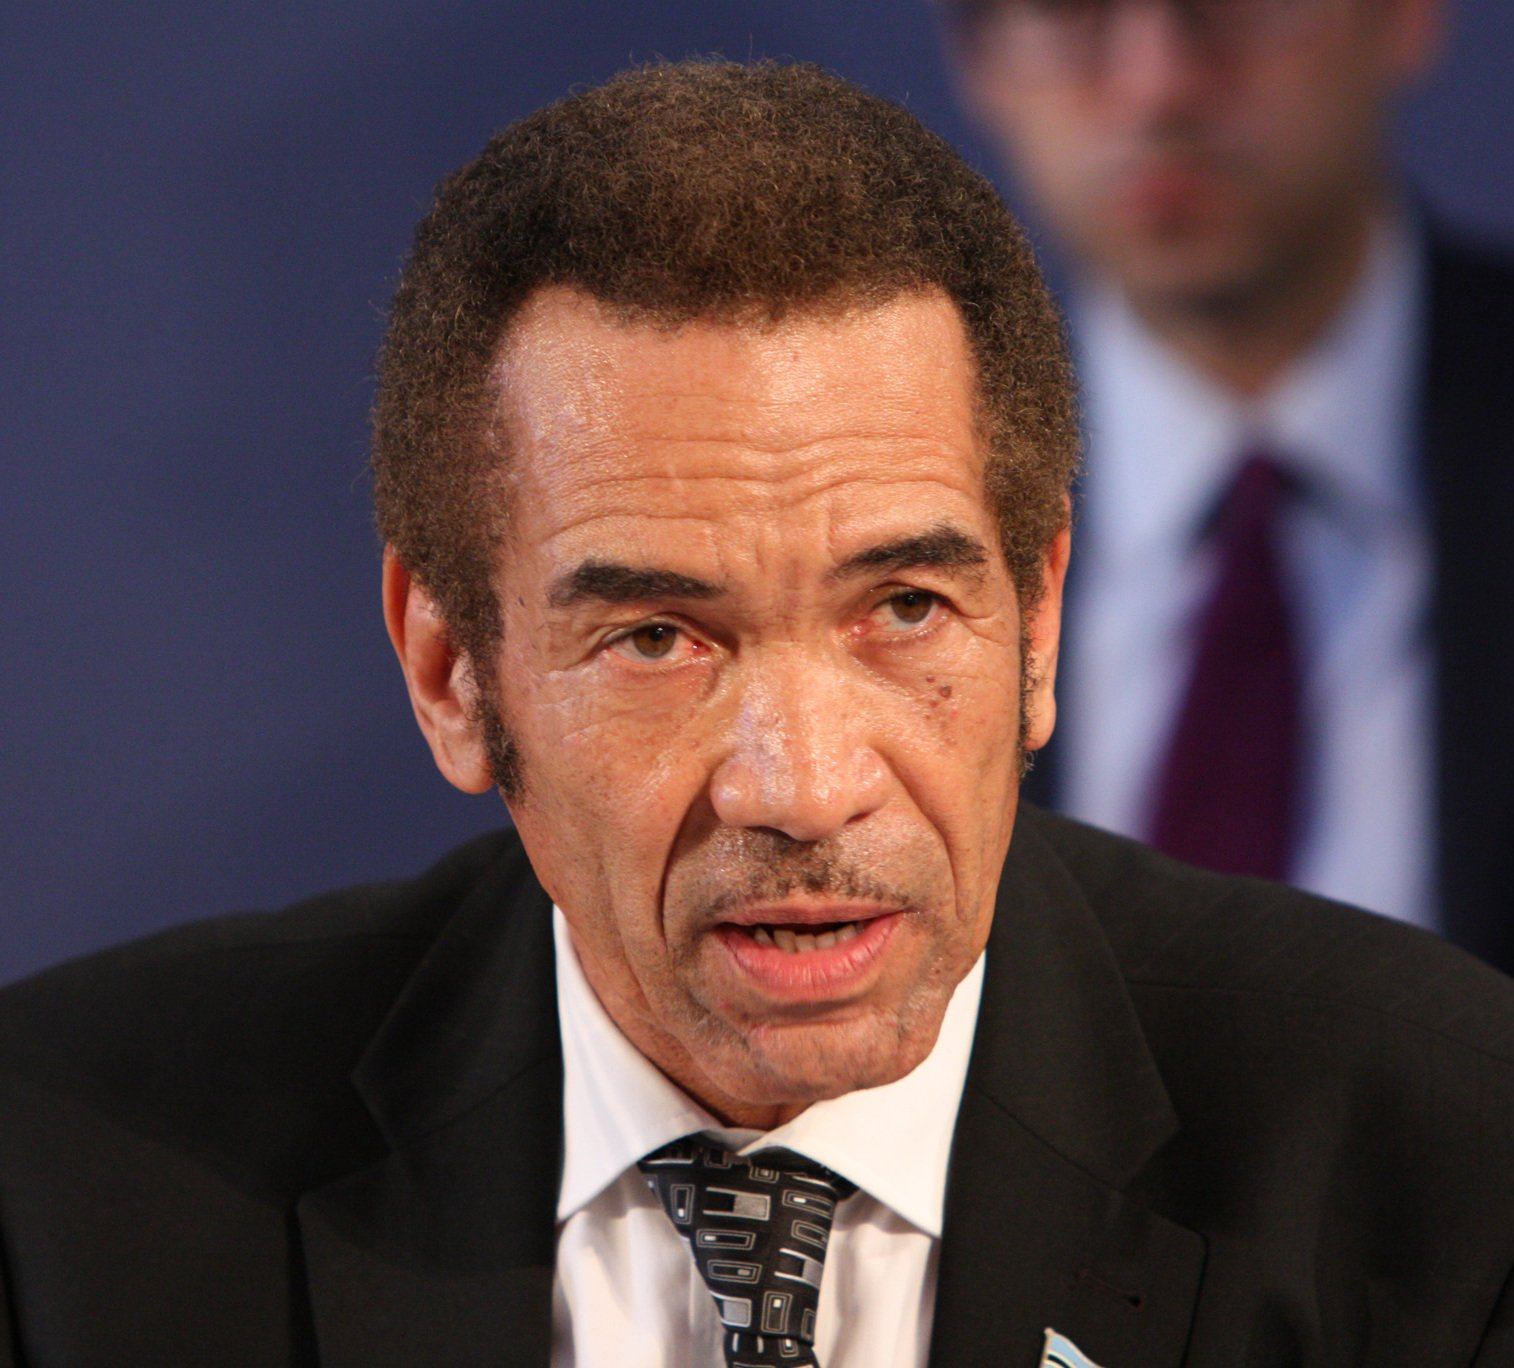 Khama says he will not take coronavirus vaccine yet